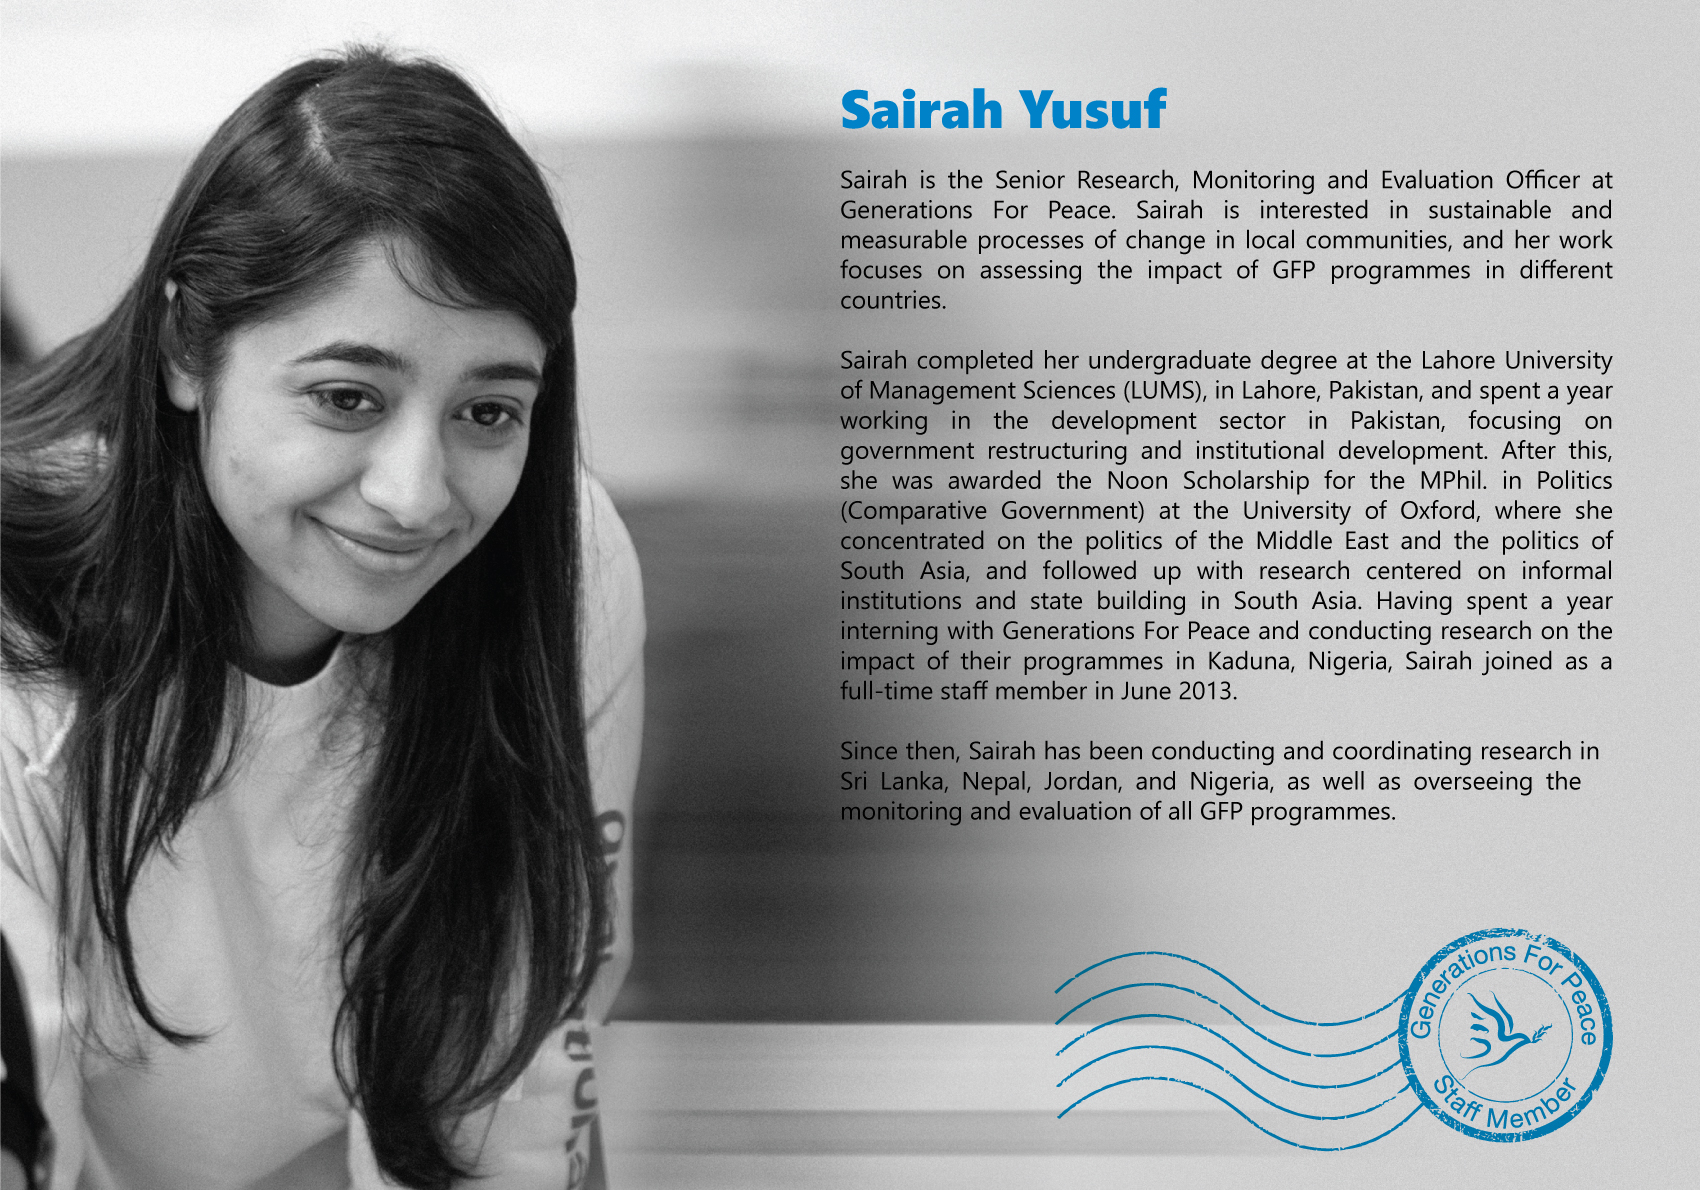 Sairah Yusuf, Monitoring and Evaluation Officer at GFP